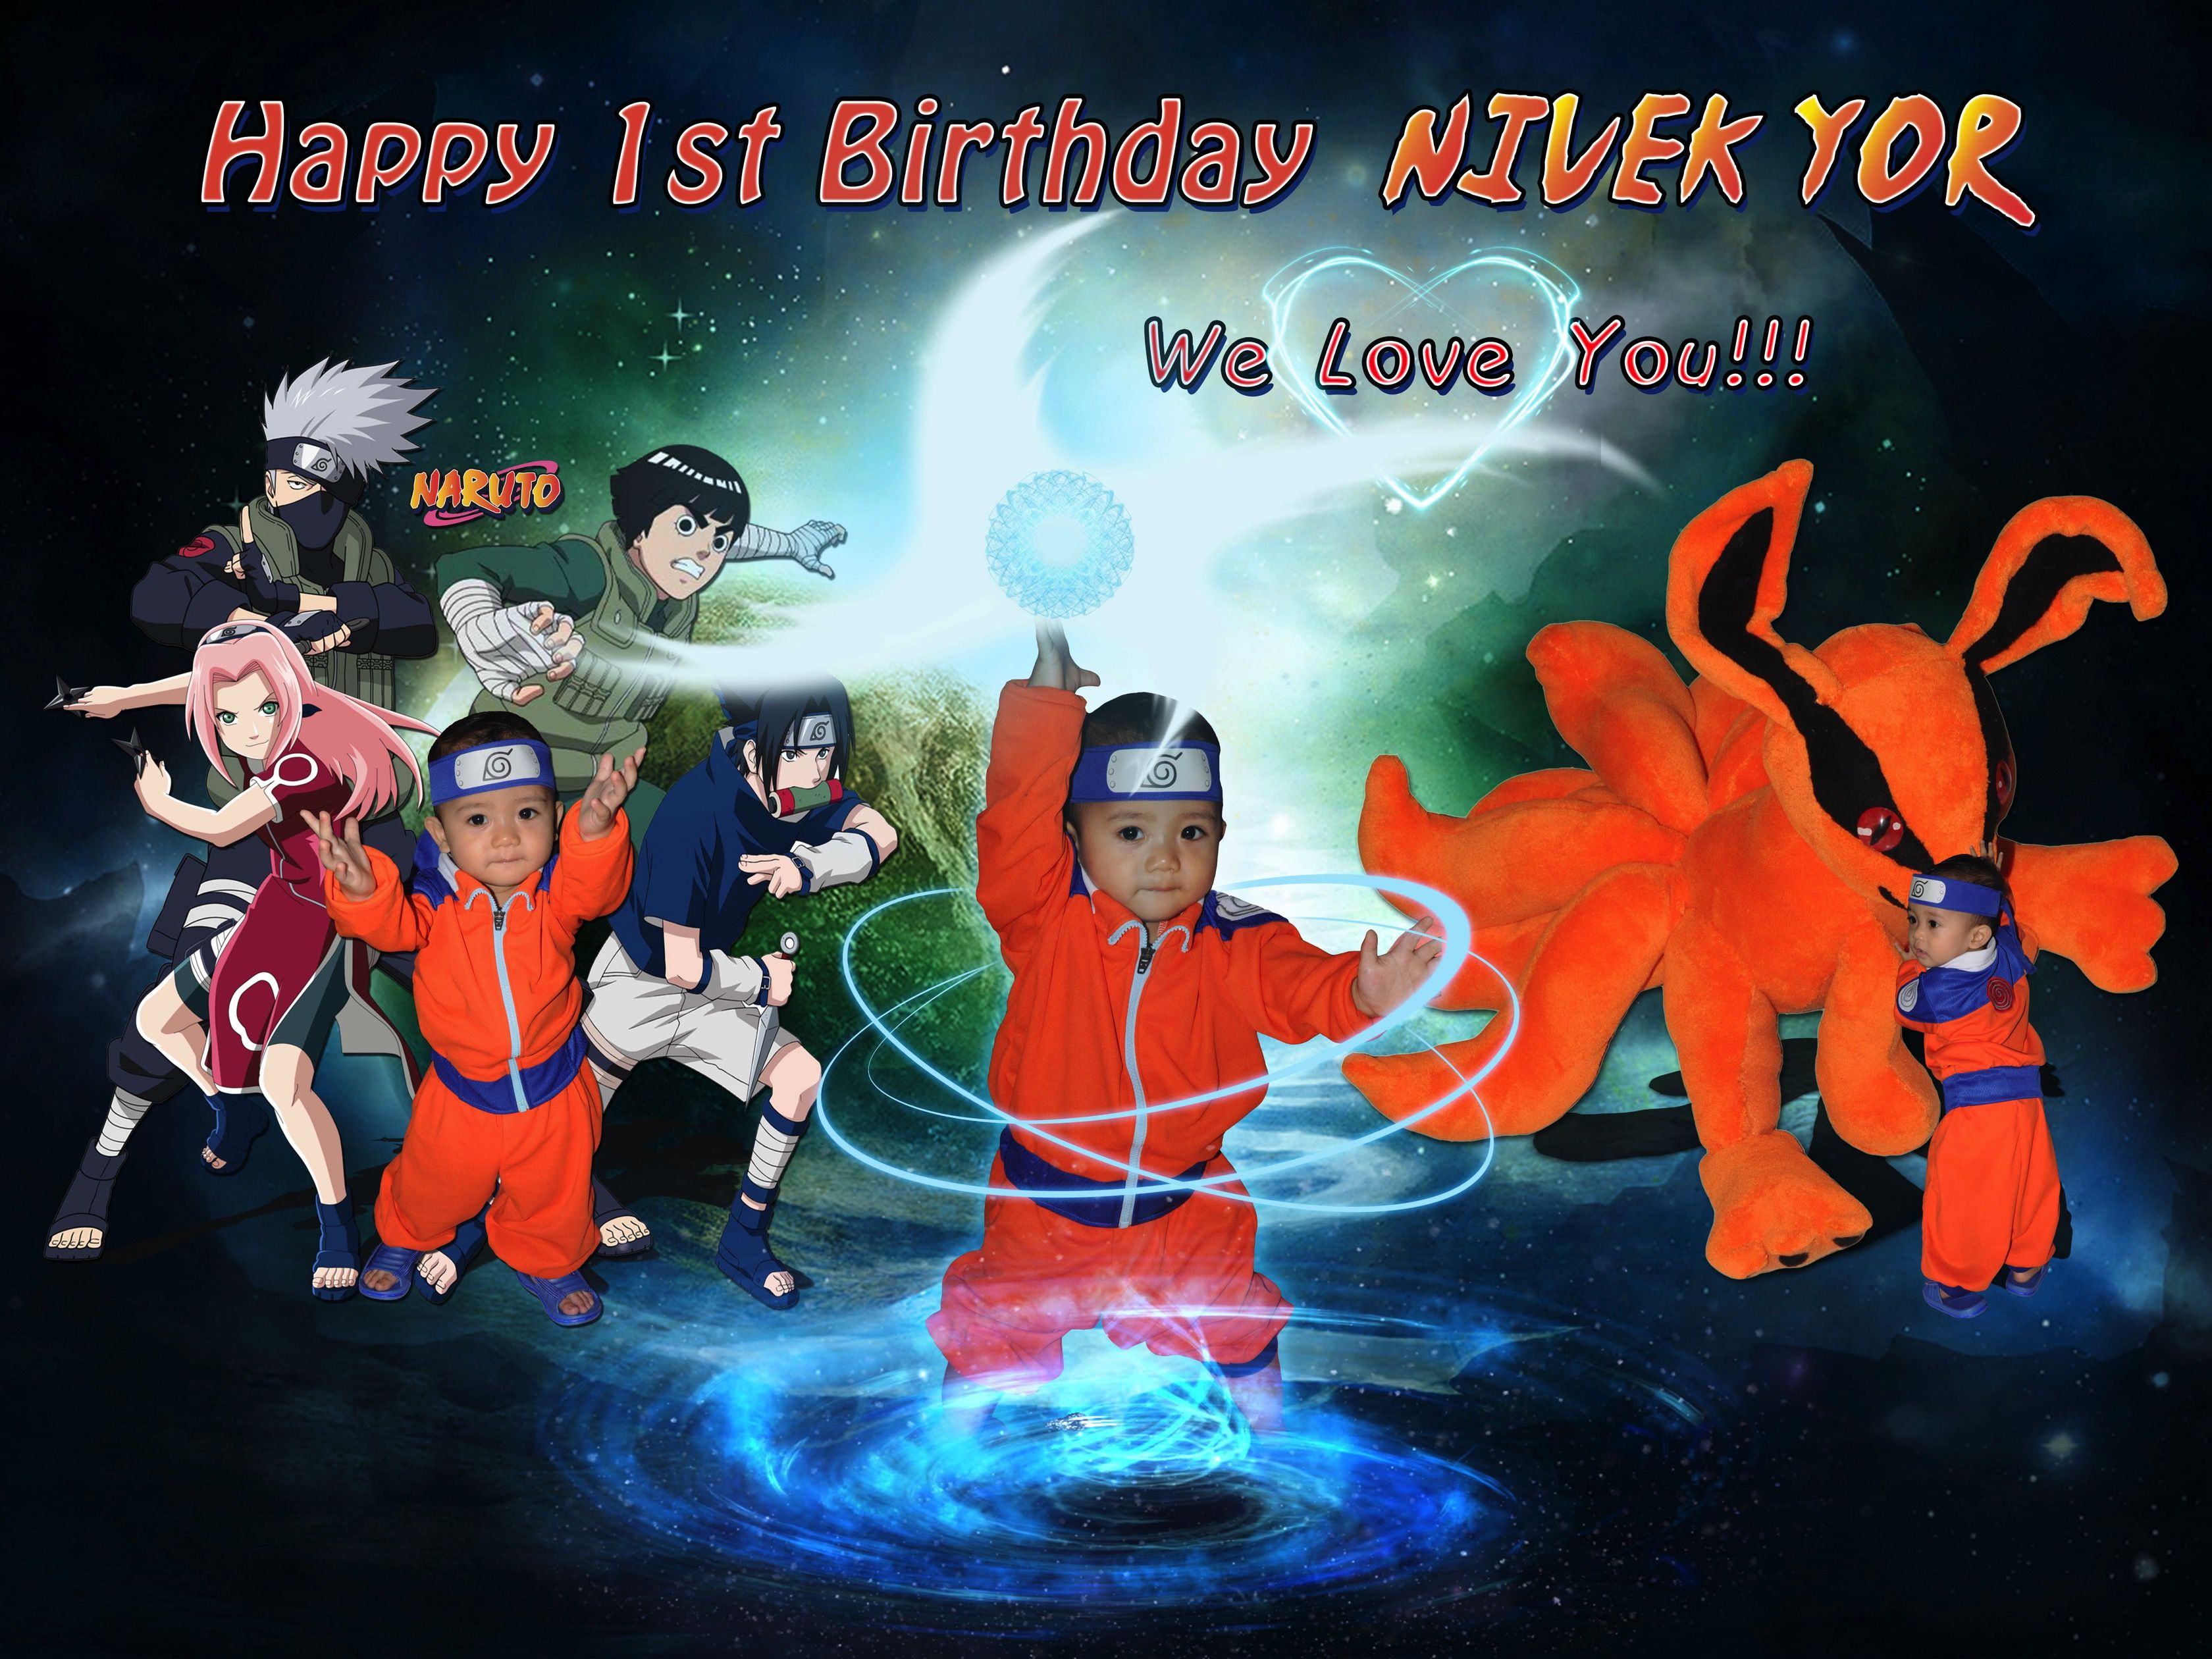 Naruto tarp naruto invitation naruto birthday theme nivek yor naruto tarp naruto invitation naruto birthday theme nivek yor 1st birthday stopboris Choice Image